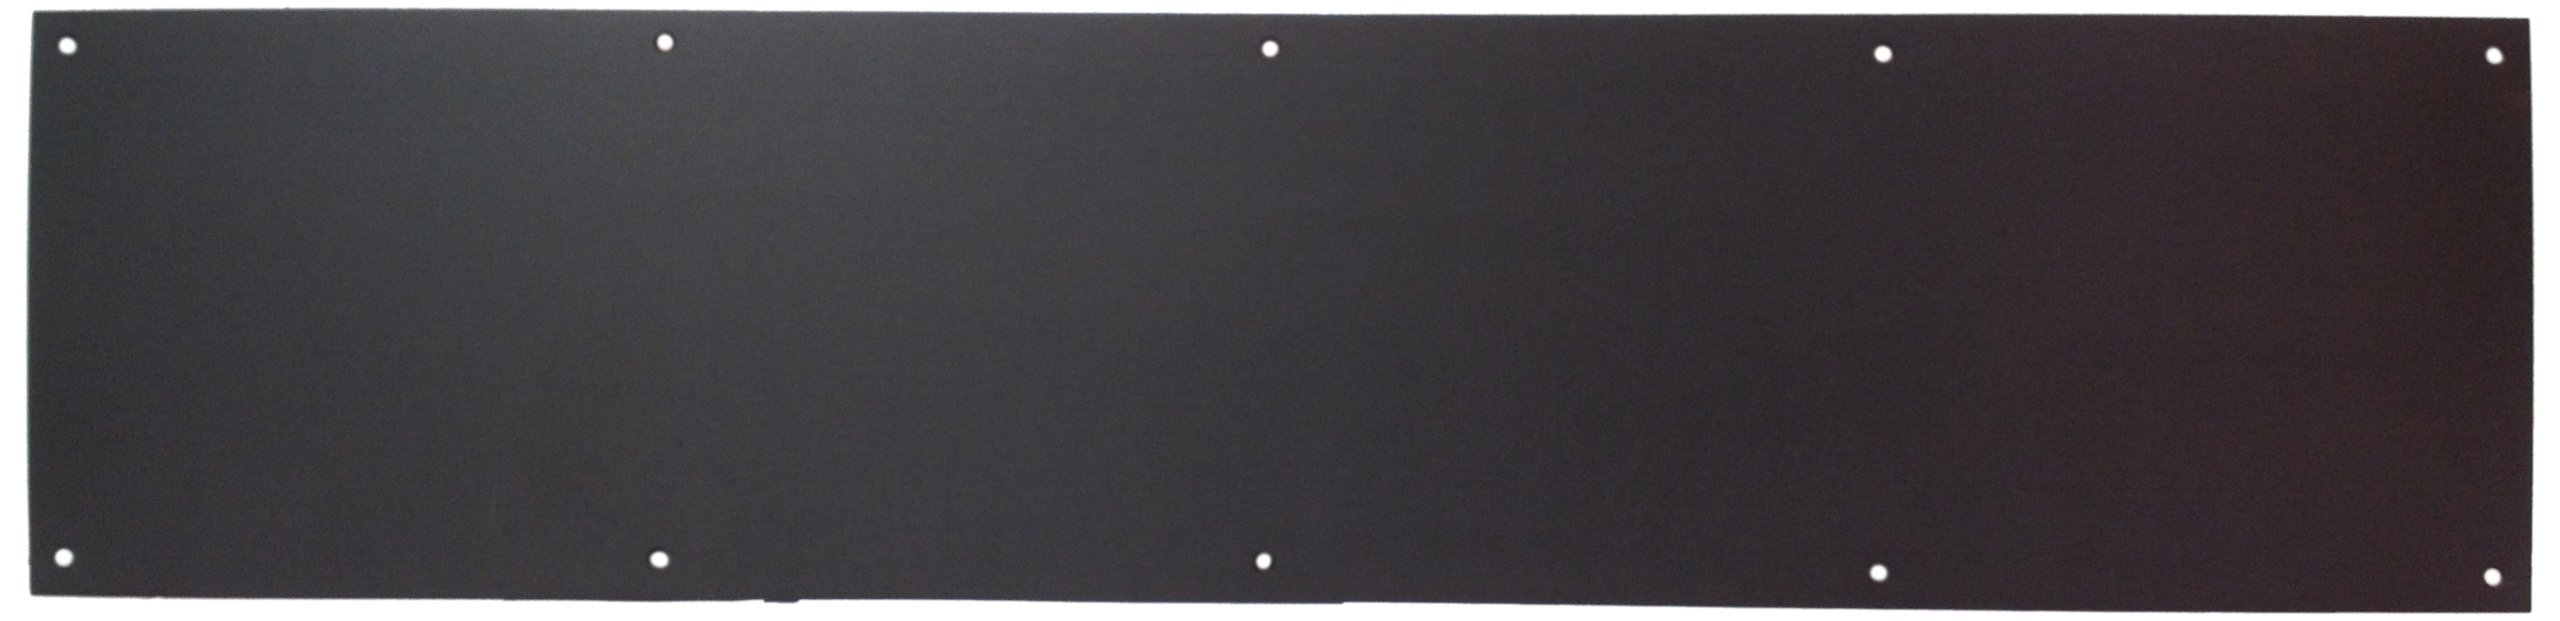 Don-Jo 90 Metal Kick Plate, Oil Rubbed Bronze Finish, 46'' Width x 10'' Height, 3/64'' Thick